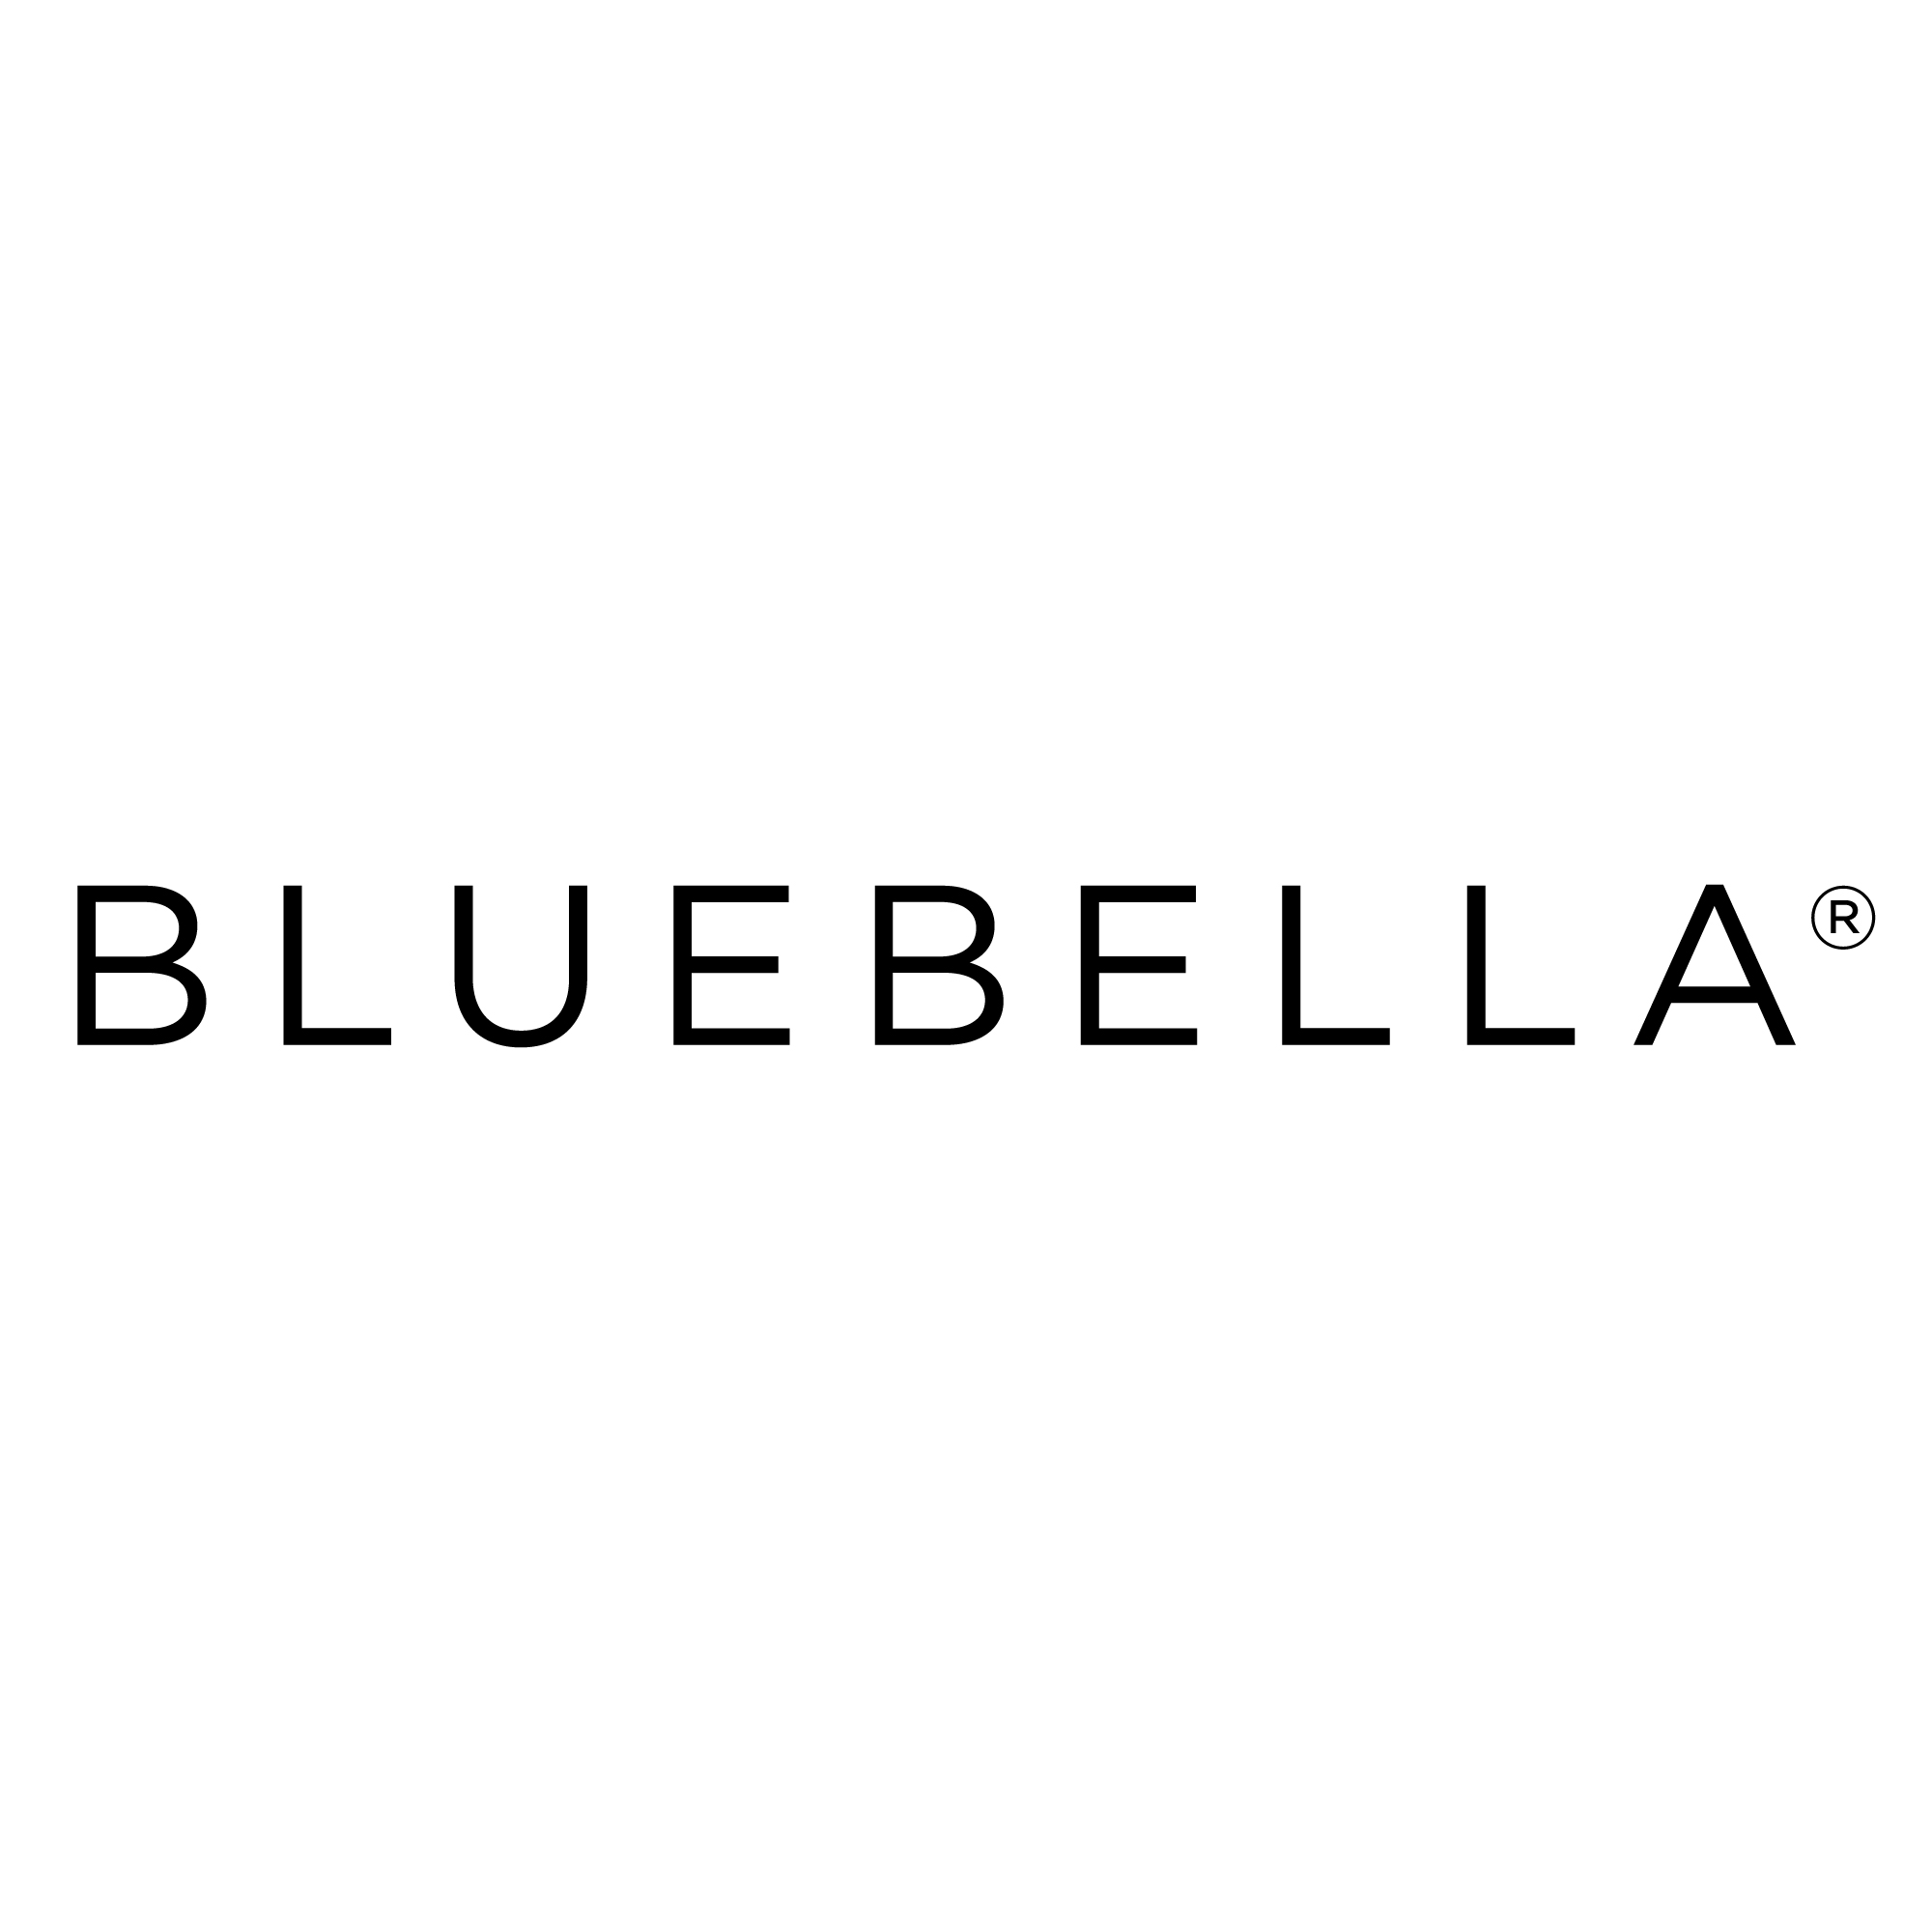 Bluebella Coupons & Promo Codes